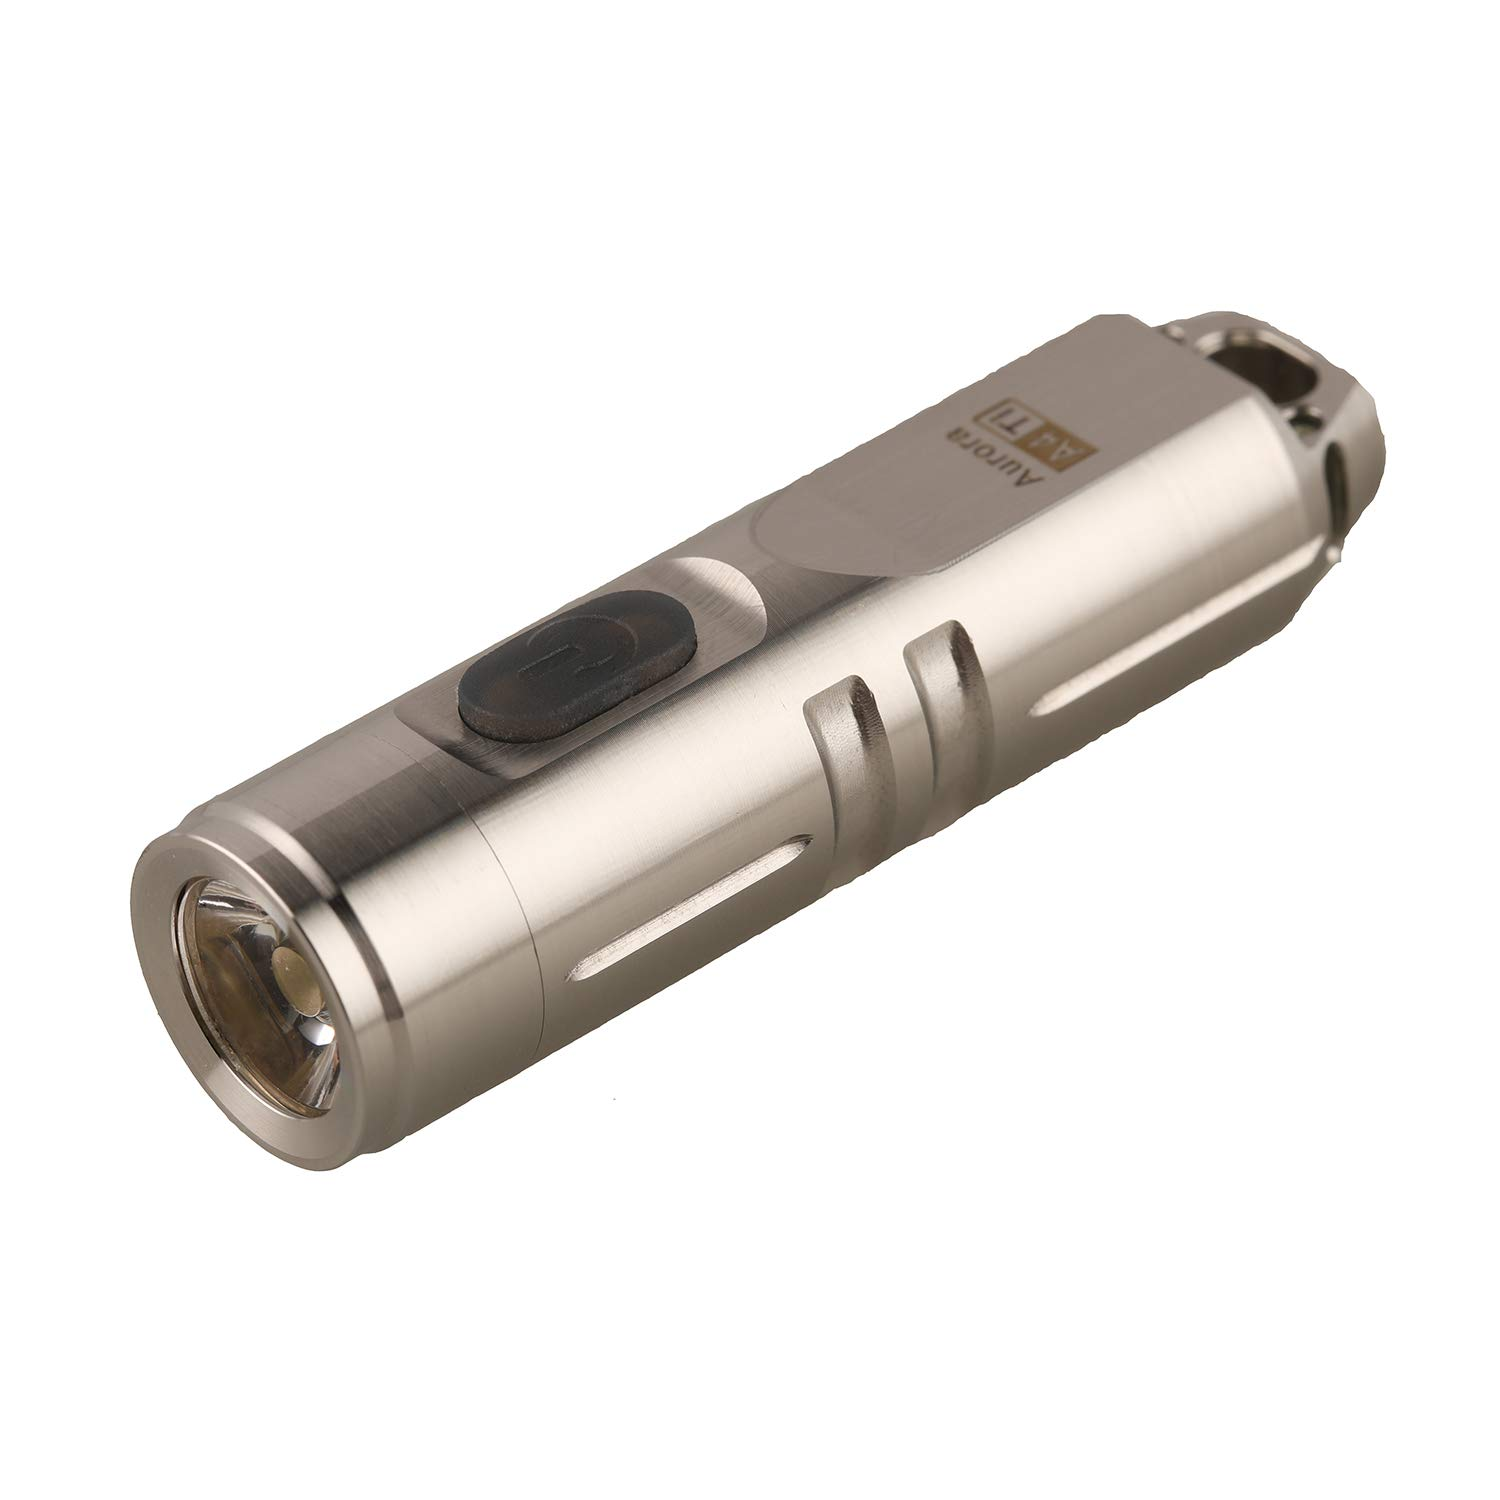 RovyVon Aurora Natural Titanium Material 550 Lumens EDC Mini Keychain Rechargeable CREE LED Flashlight,Silver, Idea as a Gift(A4 Silver)